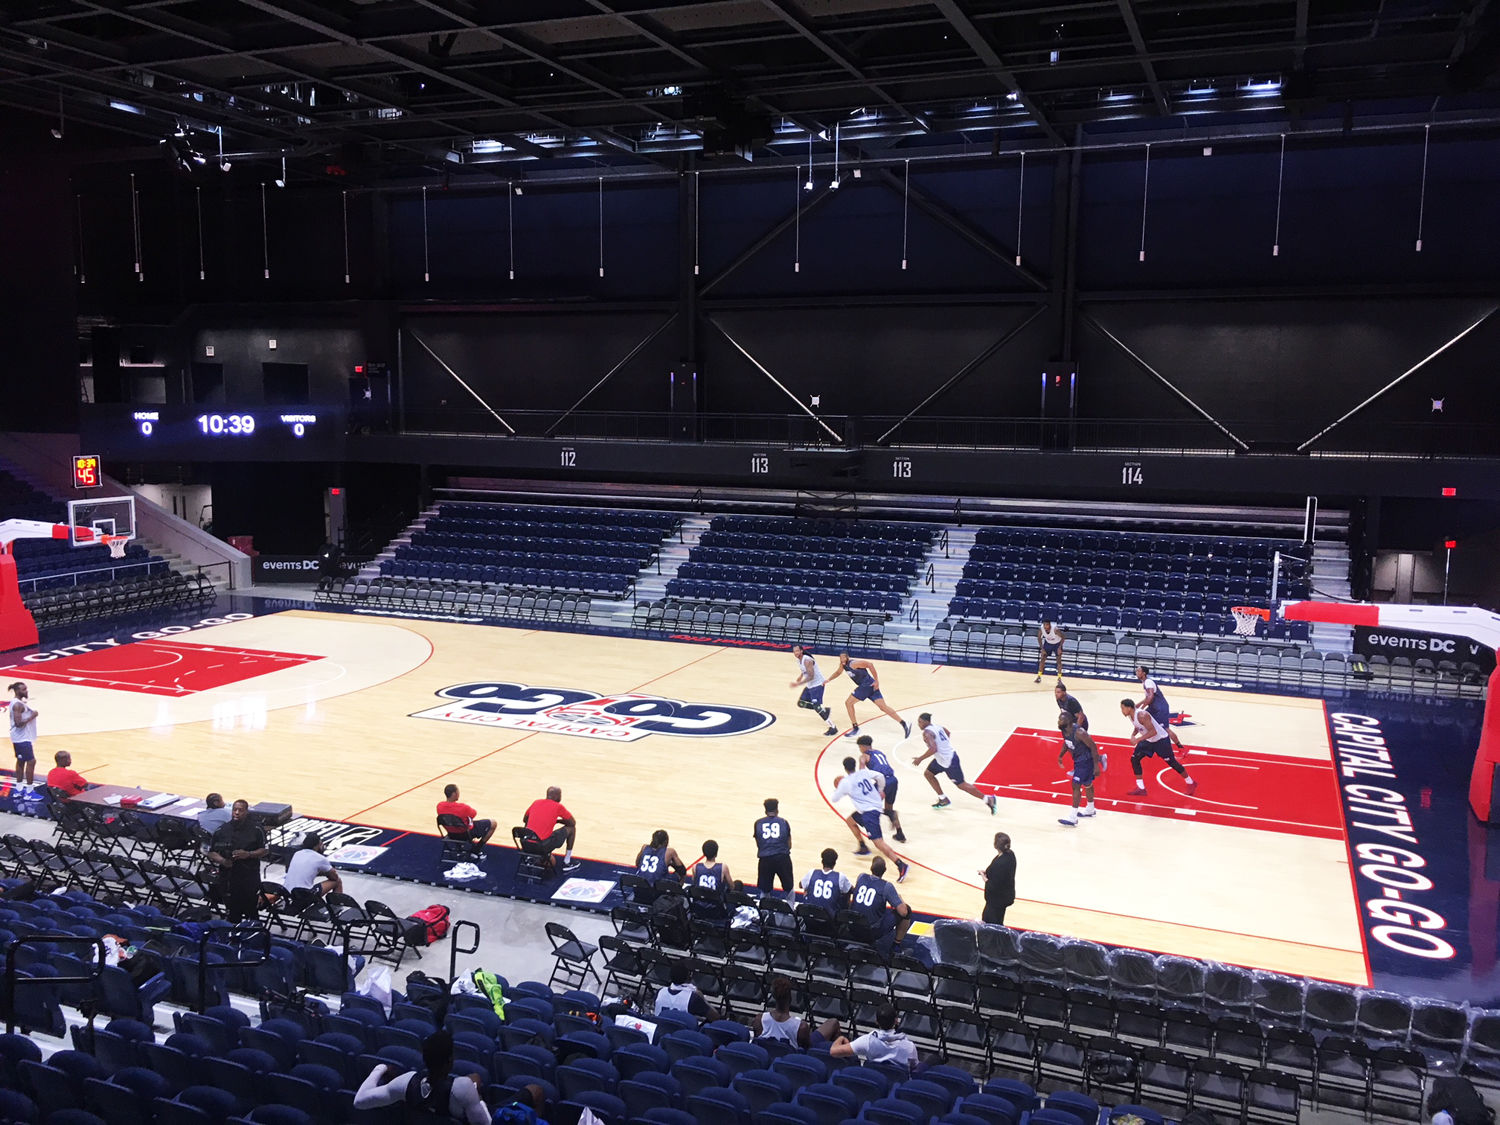 The tryout provided a sneak preview of the new home for both the Go-Go and the Mystics. (WTOP/Noah Frank)